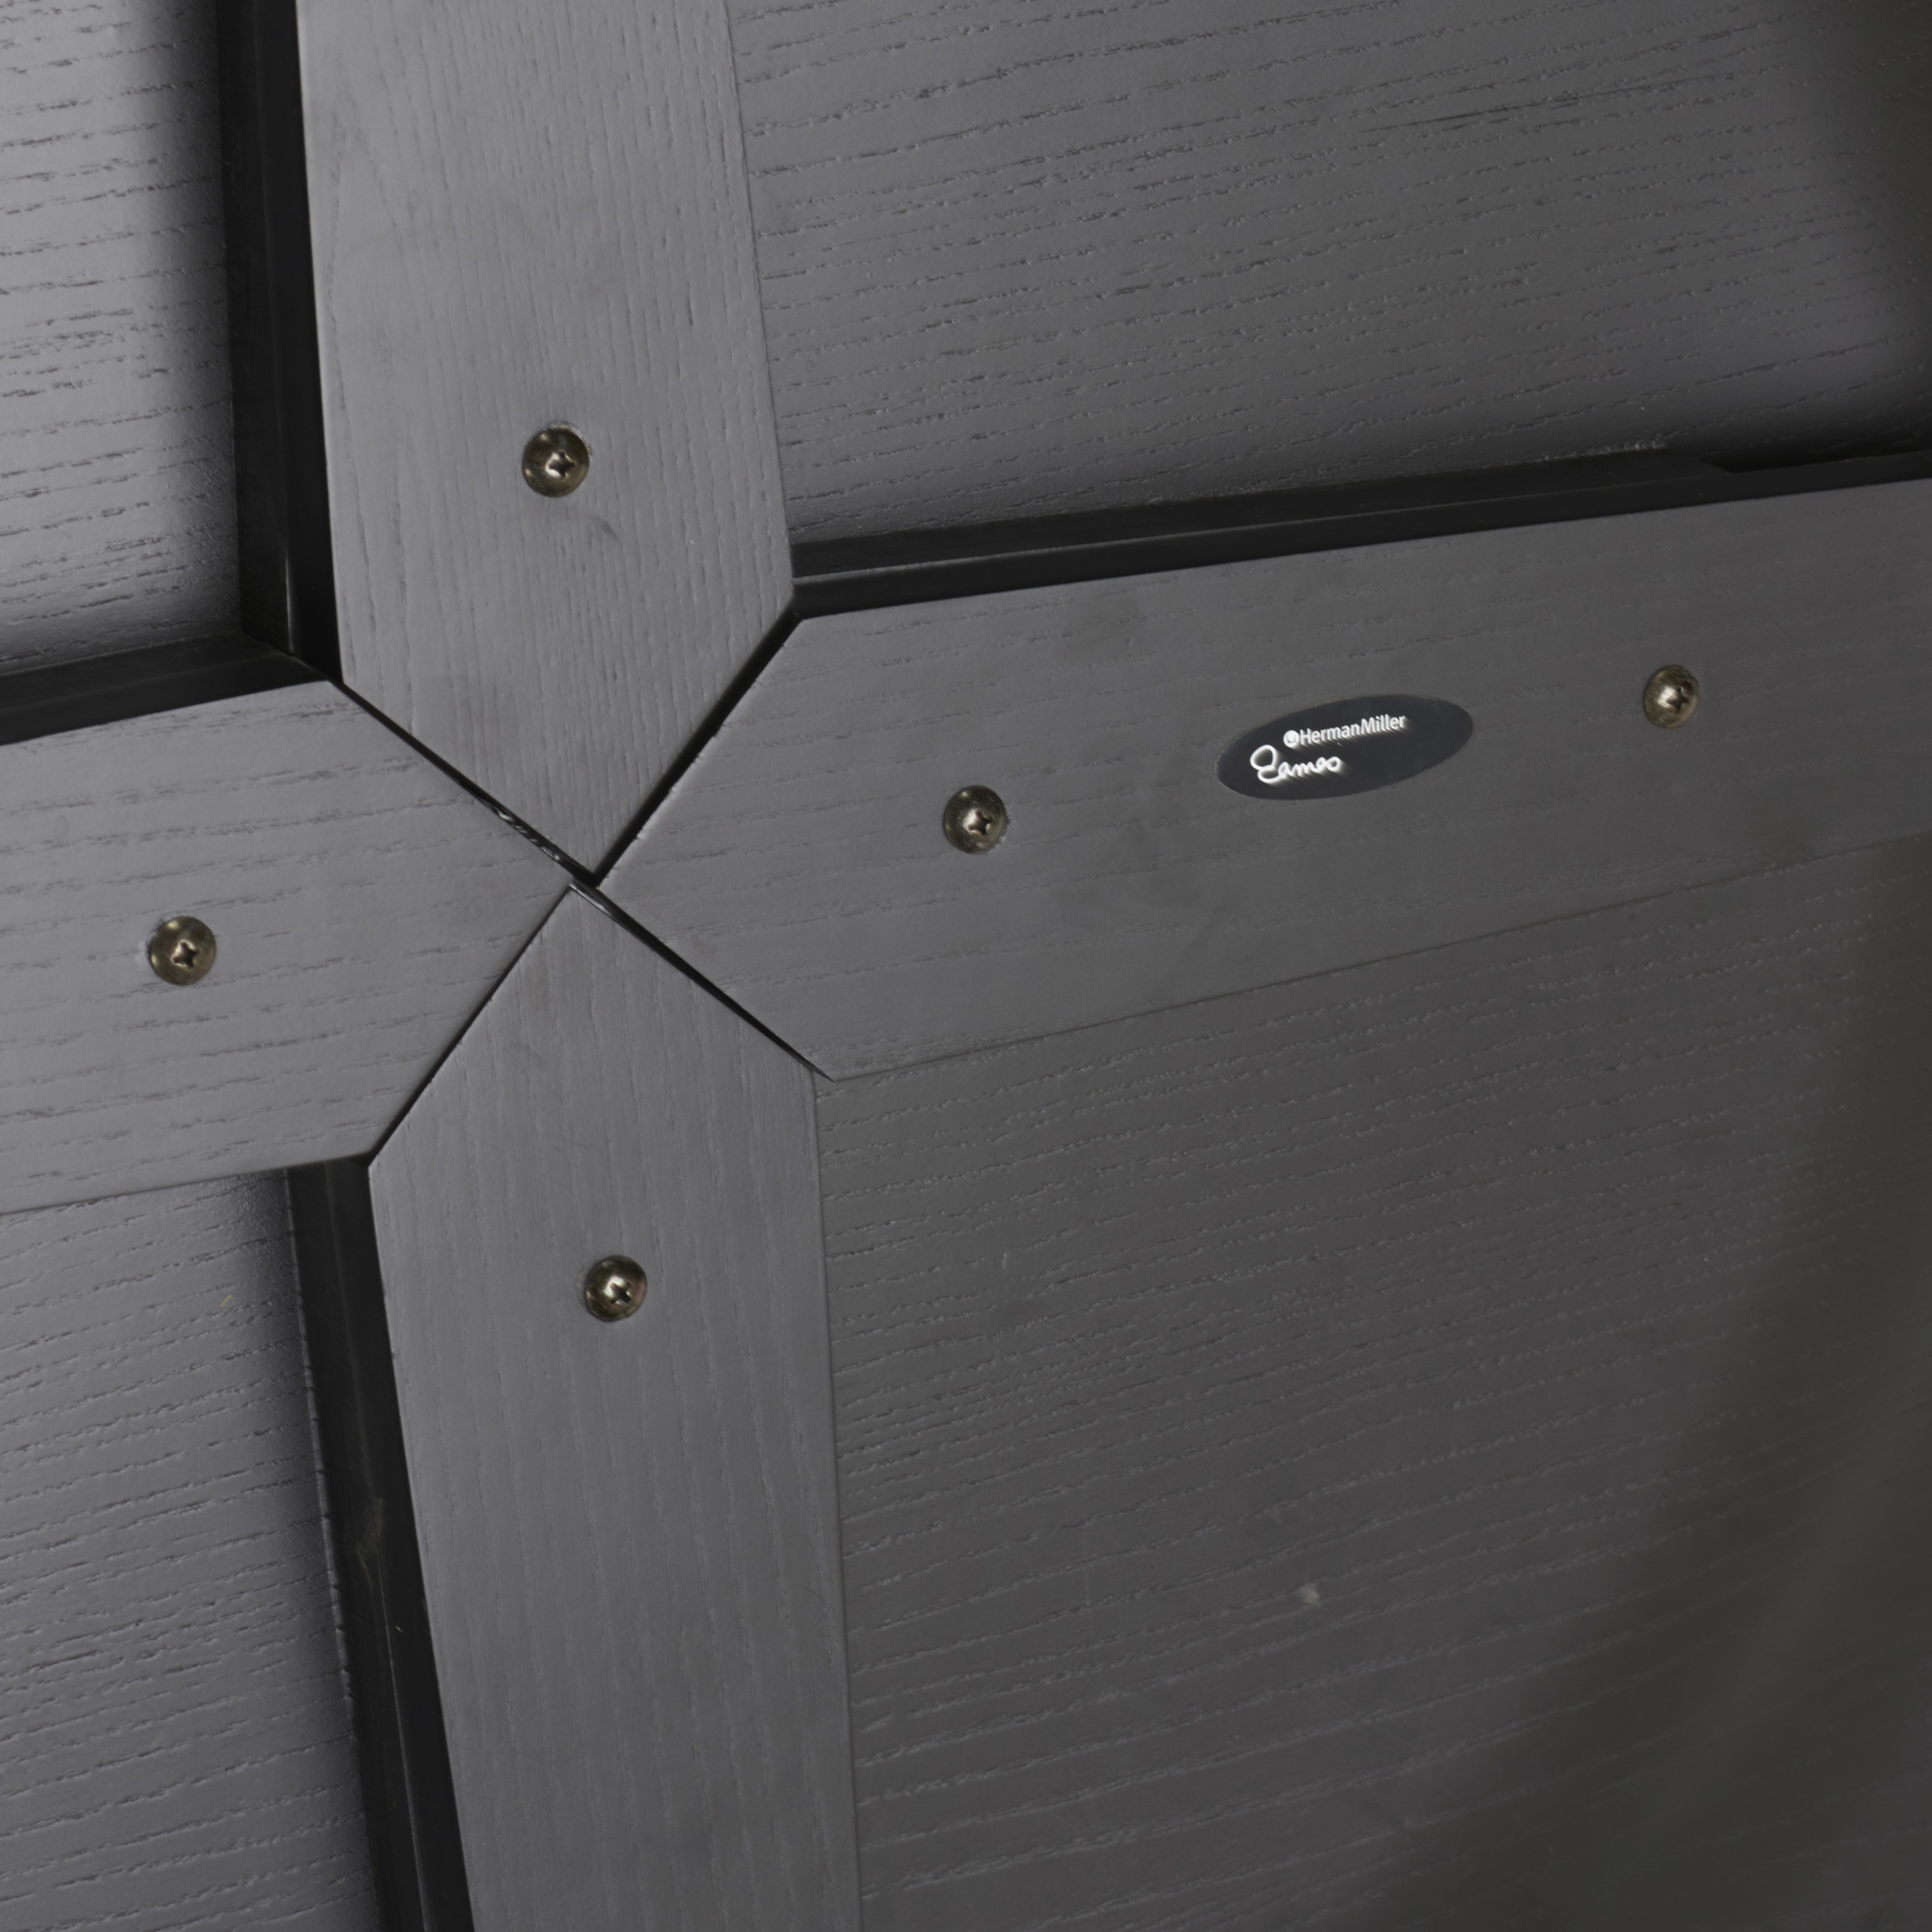 265: Charles and Ray Eames / CTW-3s, pair (3 of 3)